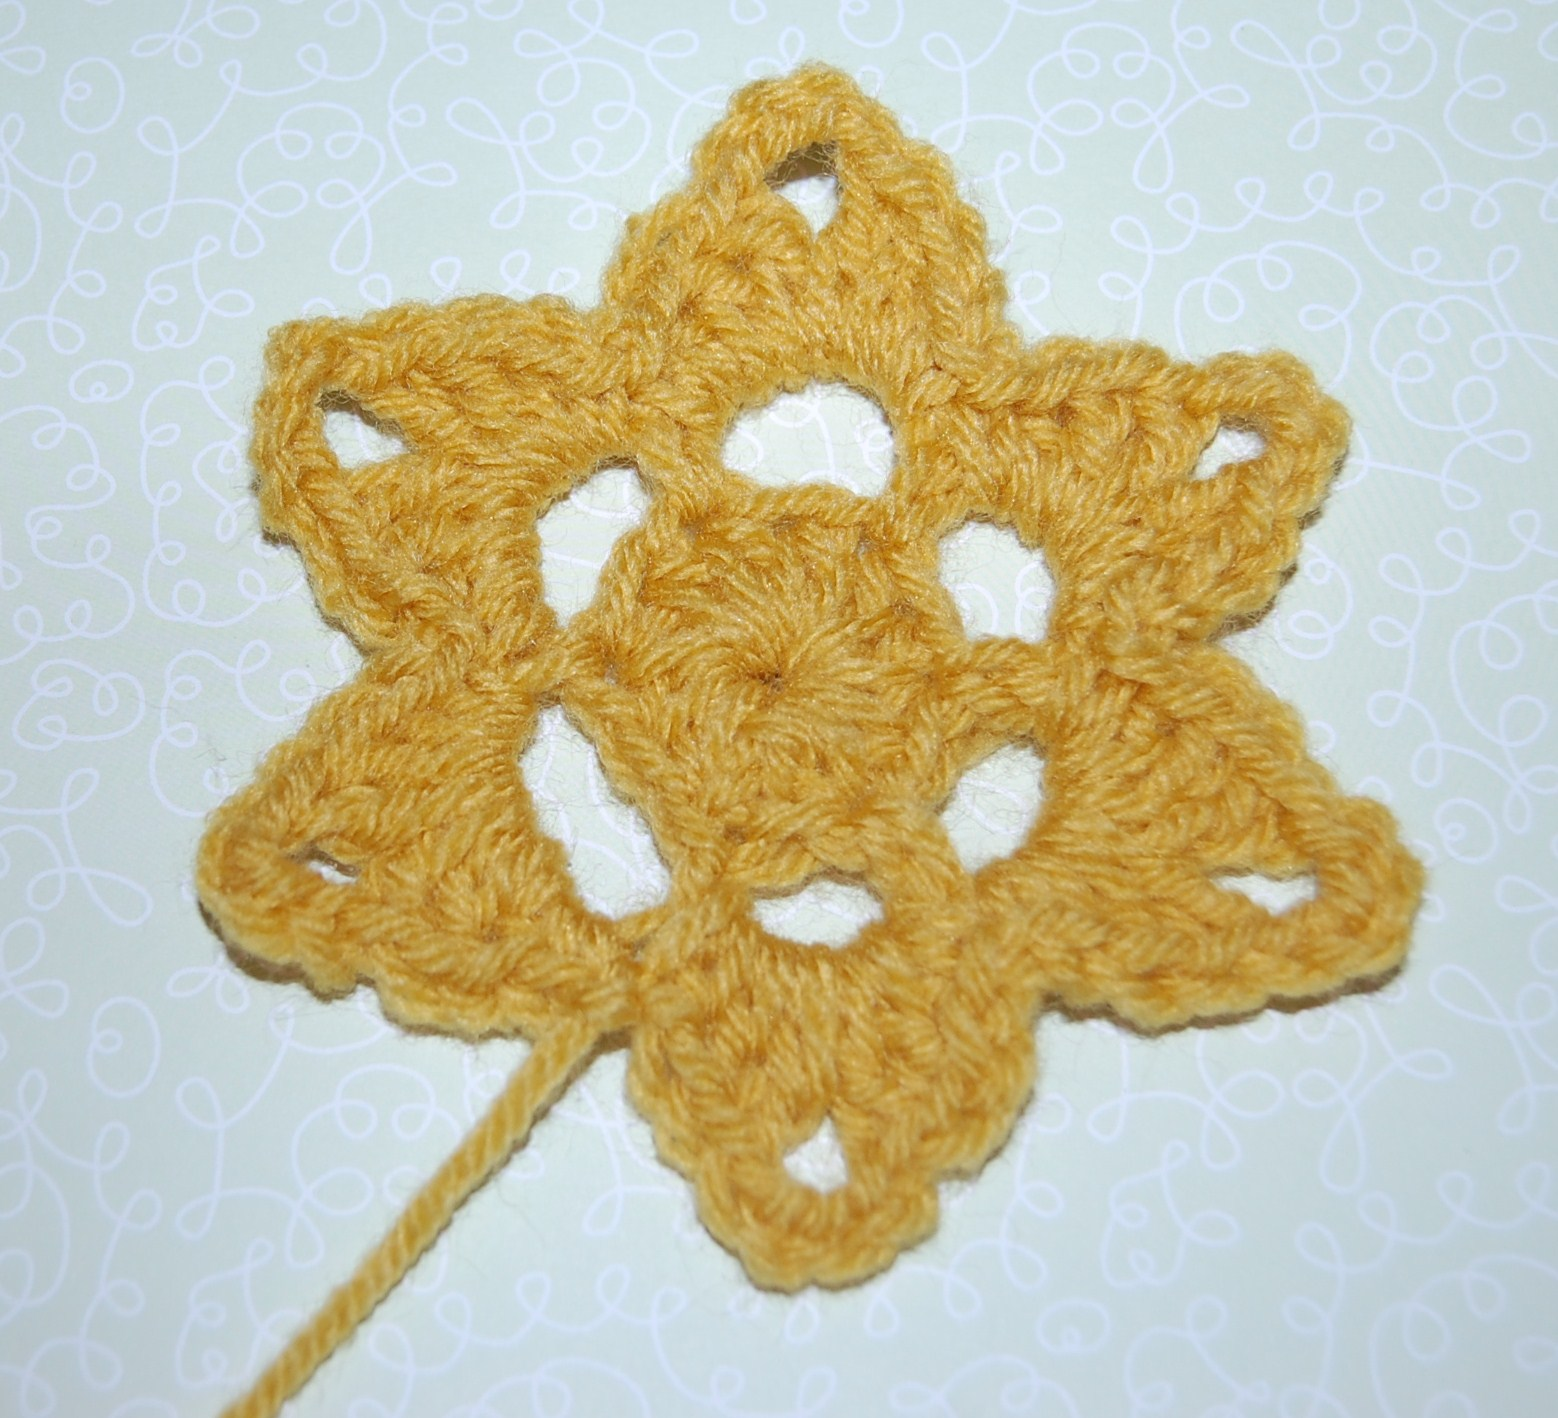 Double Ended Hook Stitches (101) - Crochet Pattern